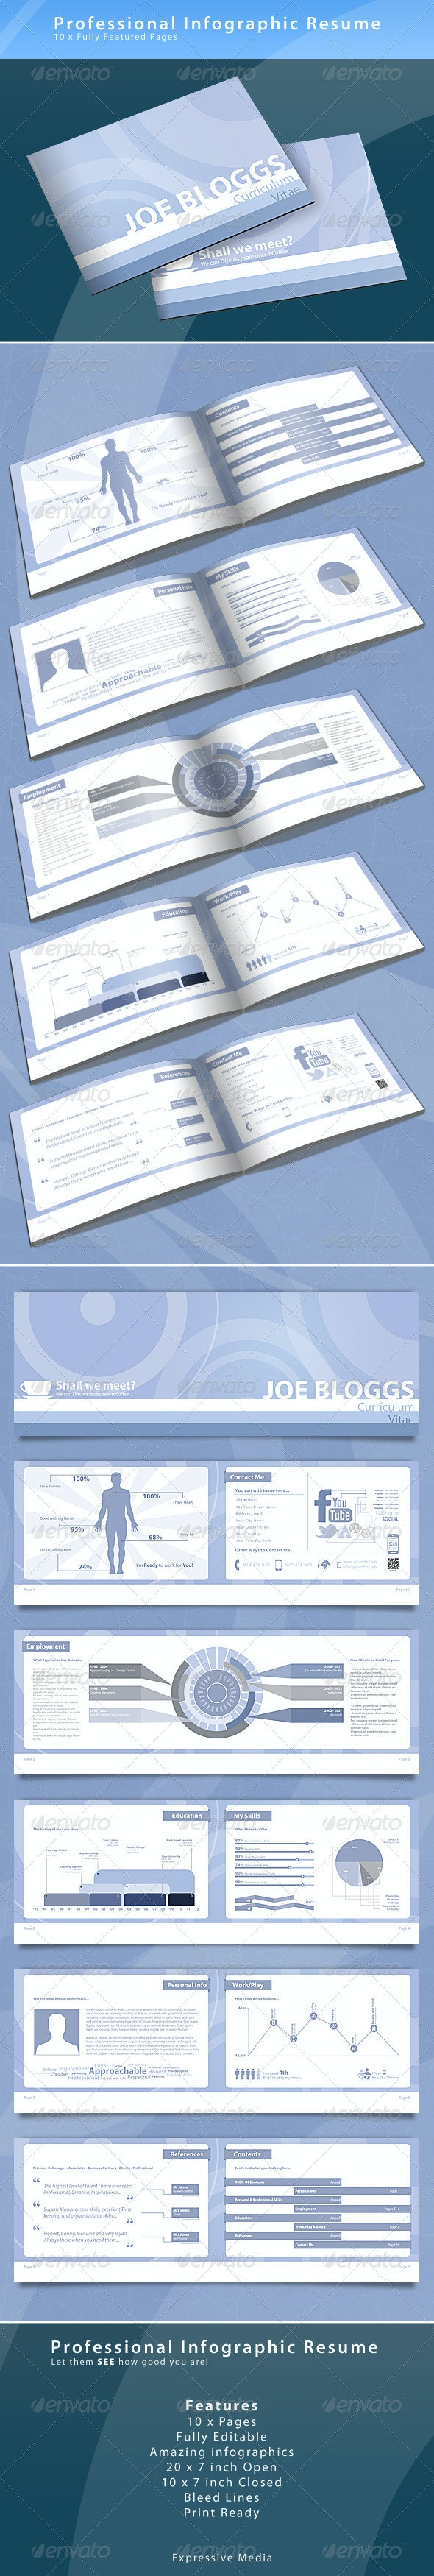 Infographic Resume Booklet - Resumes Stationery